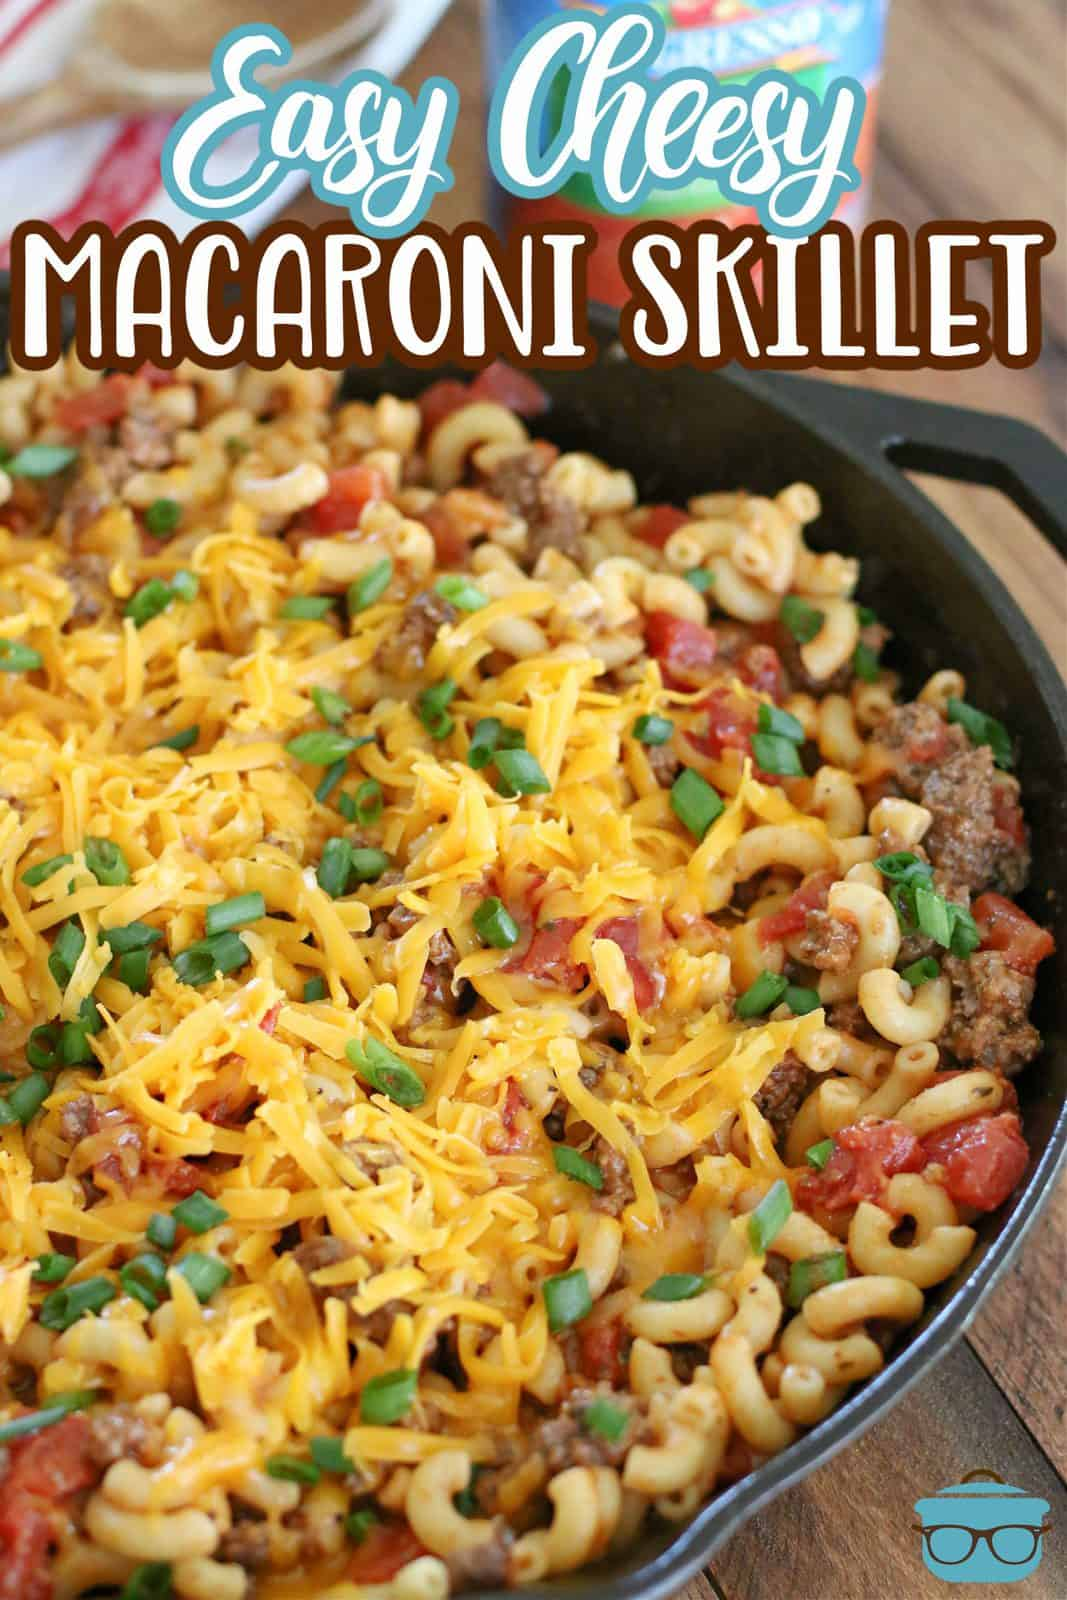 Easy Cheesy Tomato Macaroni Skillet recipe from The Country Cook. Fully cooked macaroni skillet meal in a cast iron skillet with cheese on top.